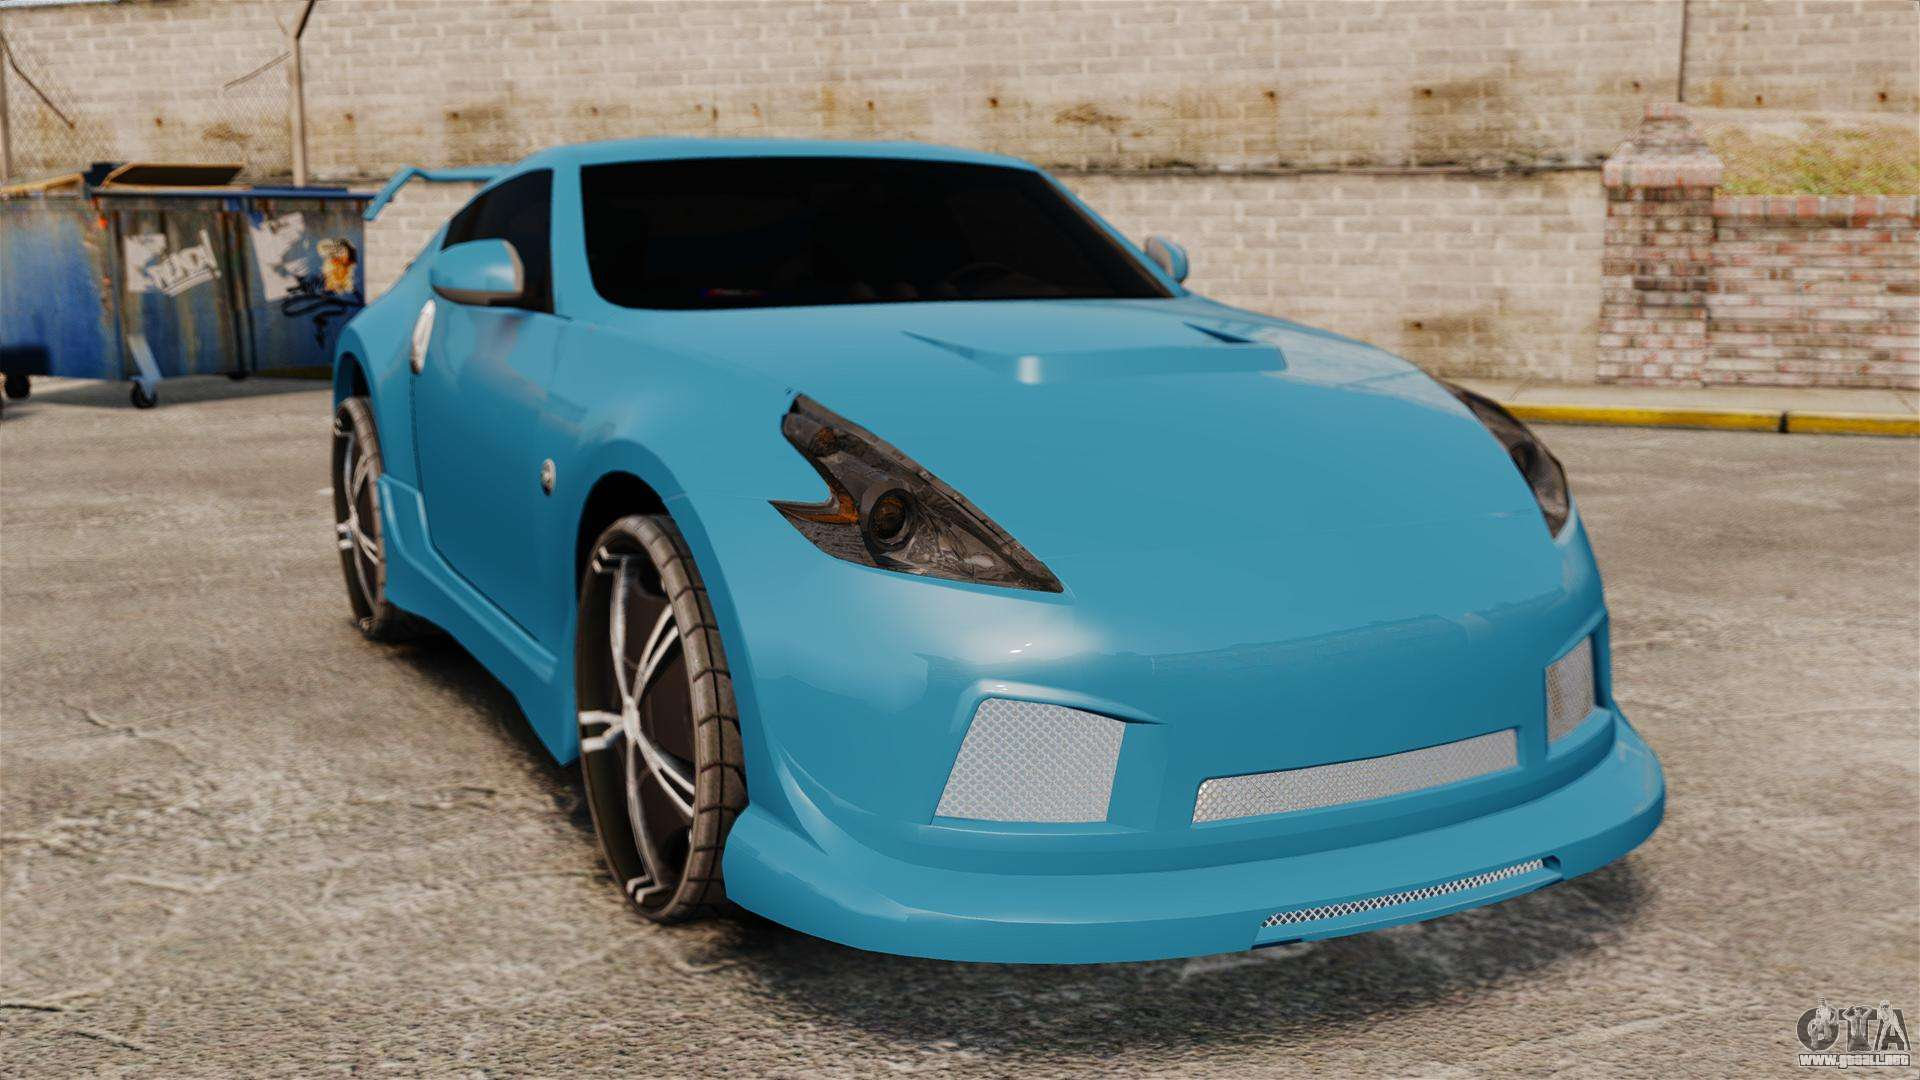 29041 Nissan 370z Tuning in addition 29041 Nissan 370z Tuning additionally 29041 Nissan 370z Tuning besides  on 29041 nissan 370z tuning